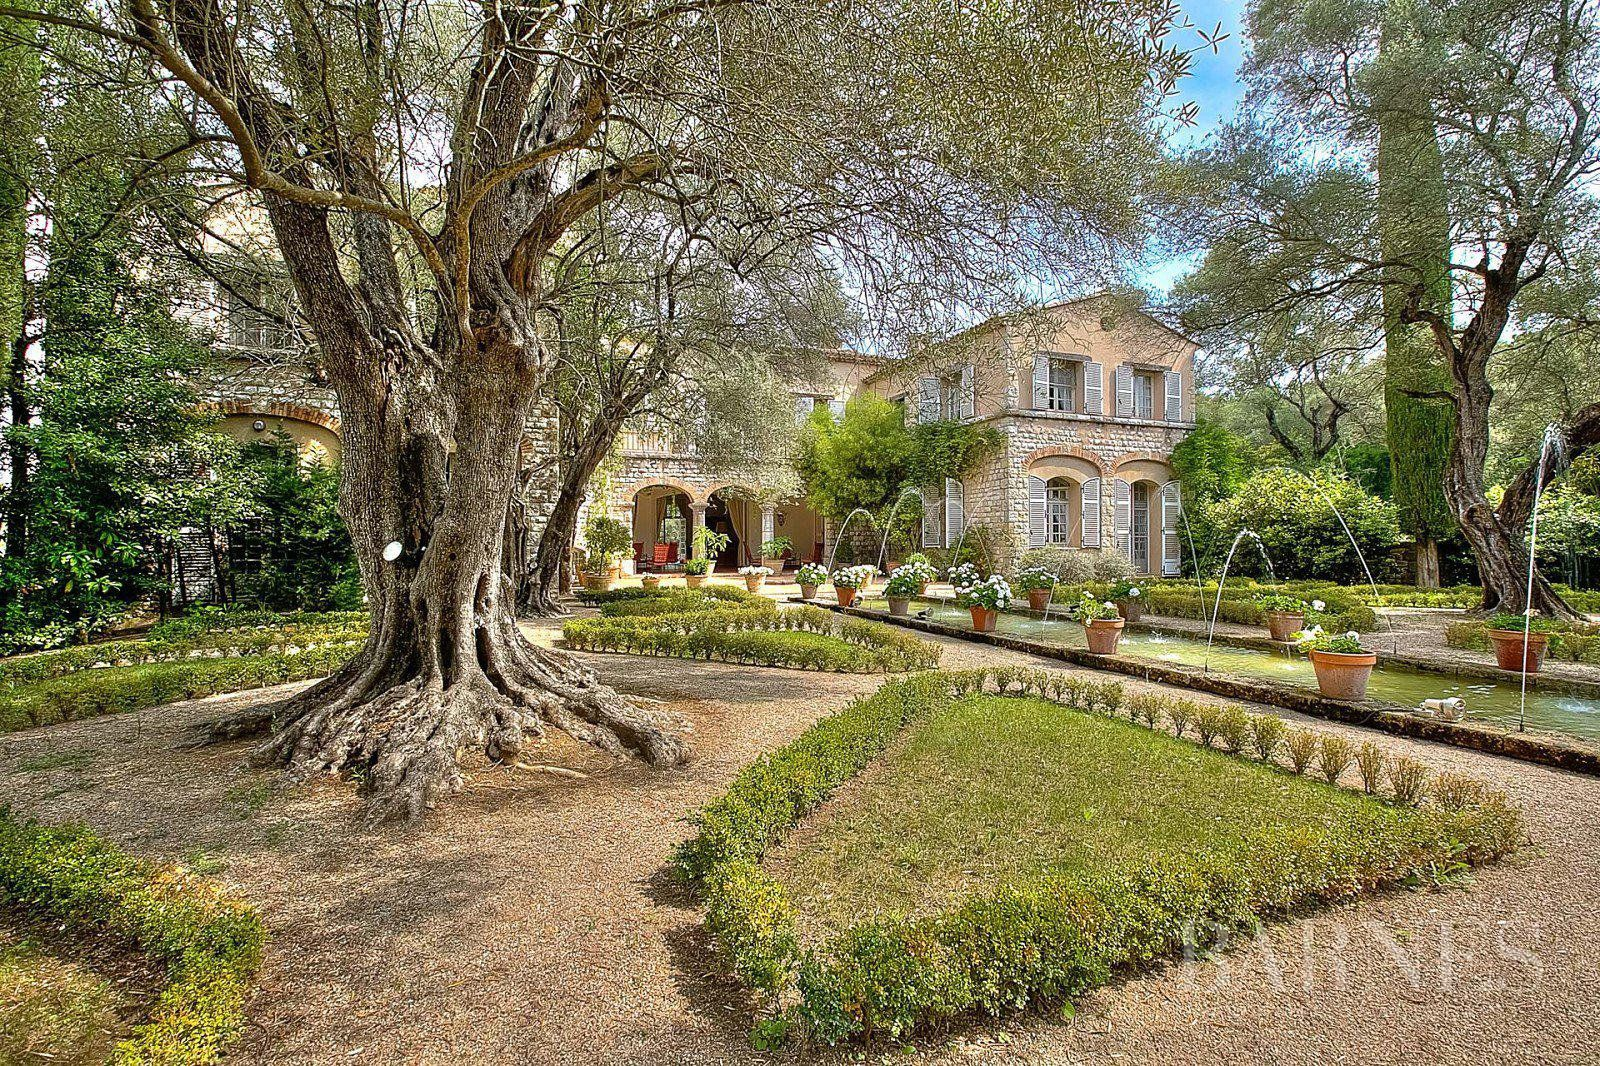 ANTIBES - FAMILY PROPERTY - 12 BEDROOMS - POOL - ANNEXES